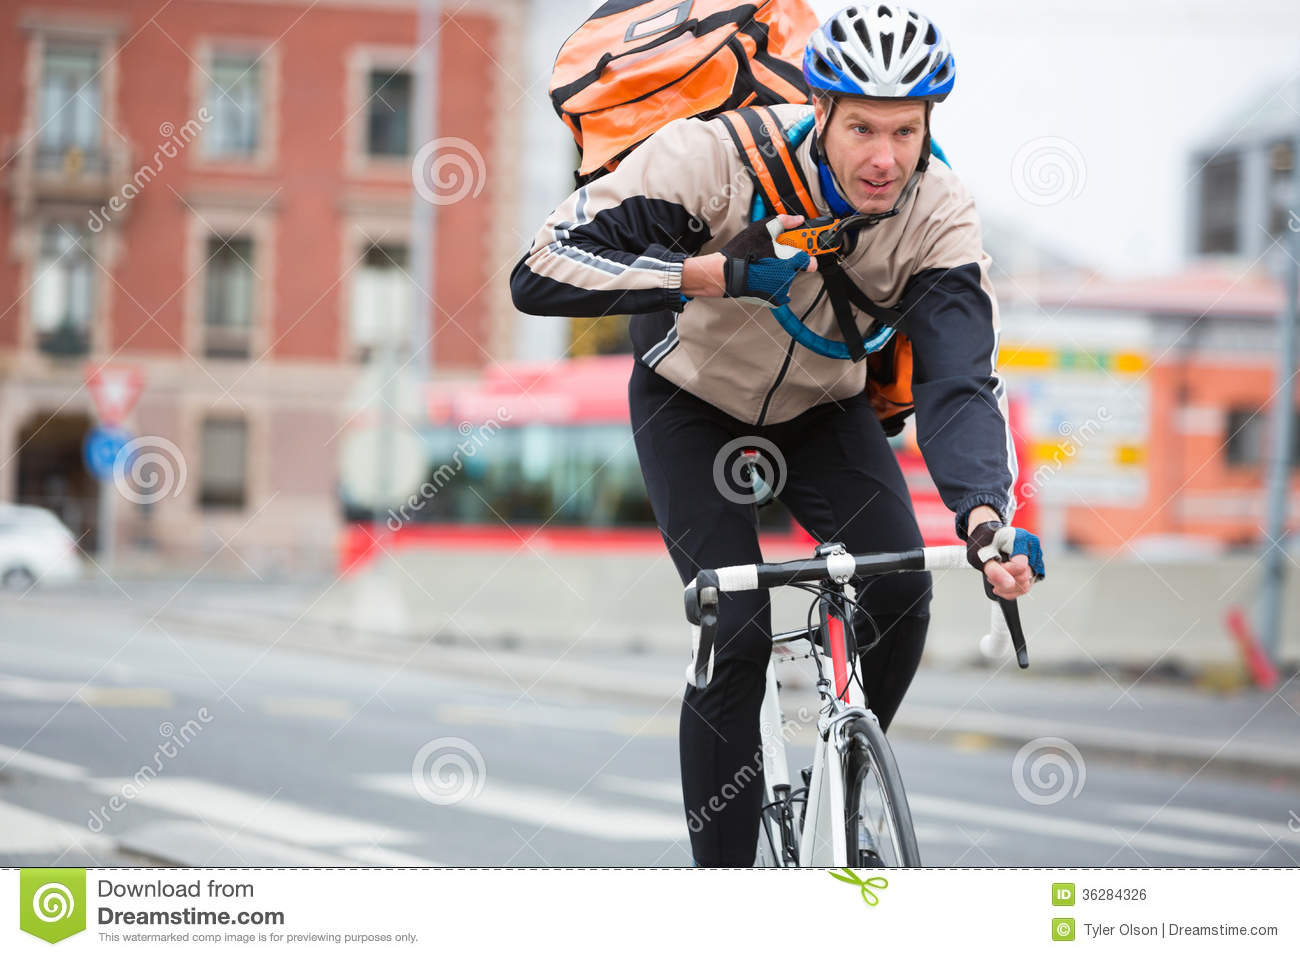 Male Cyclist With Courier Delivery Bag Riding Stock Photo